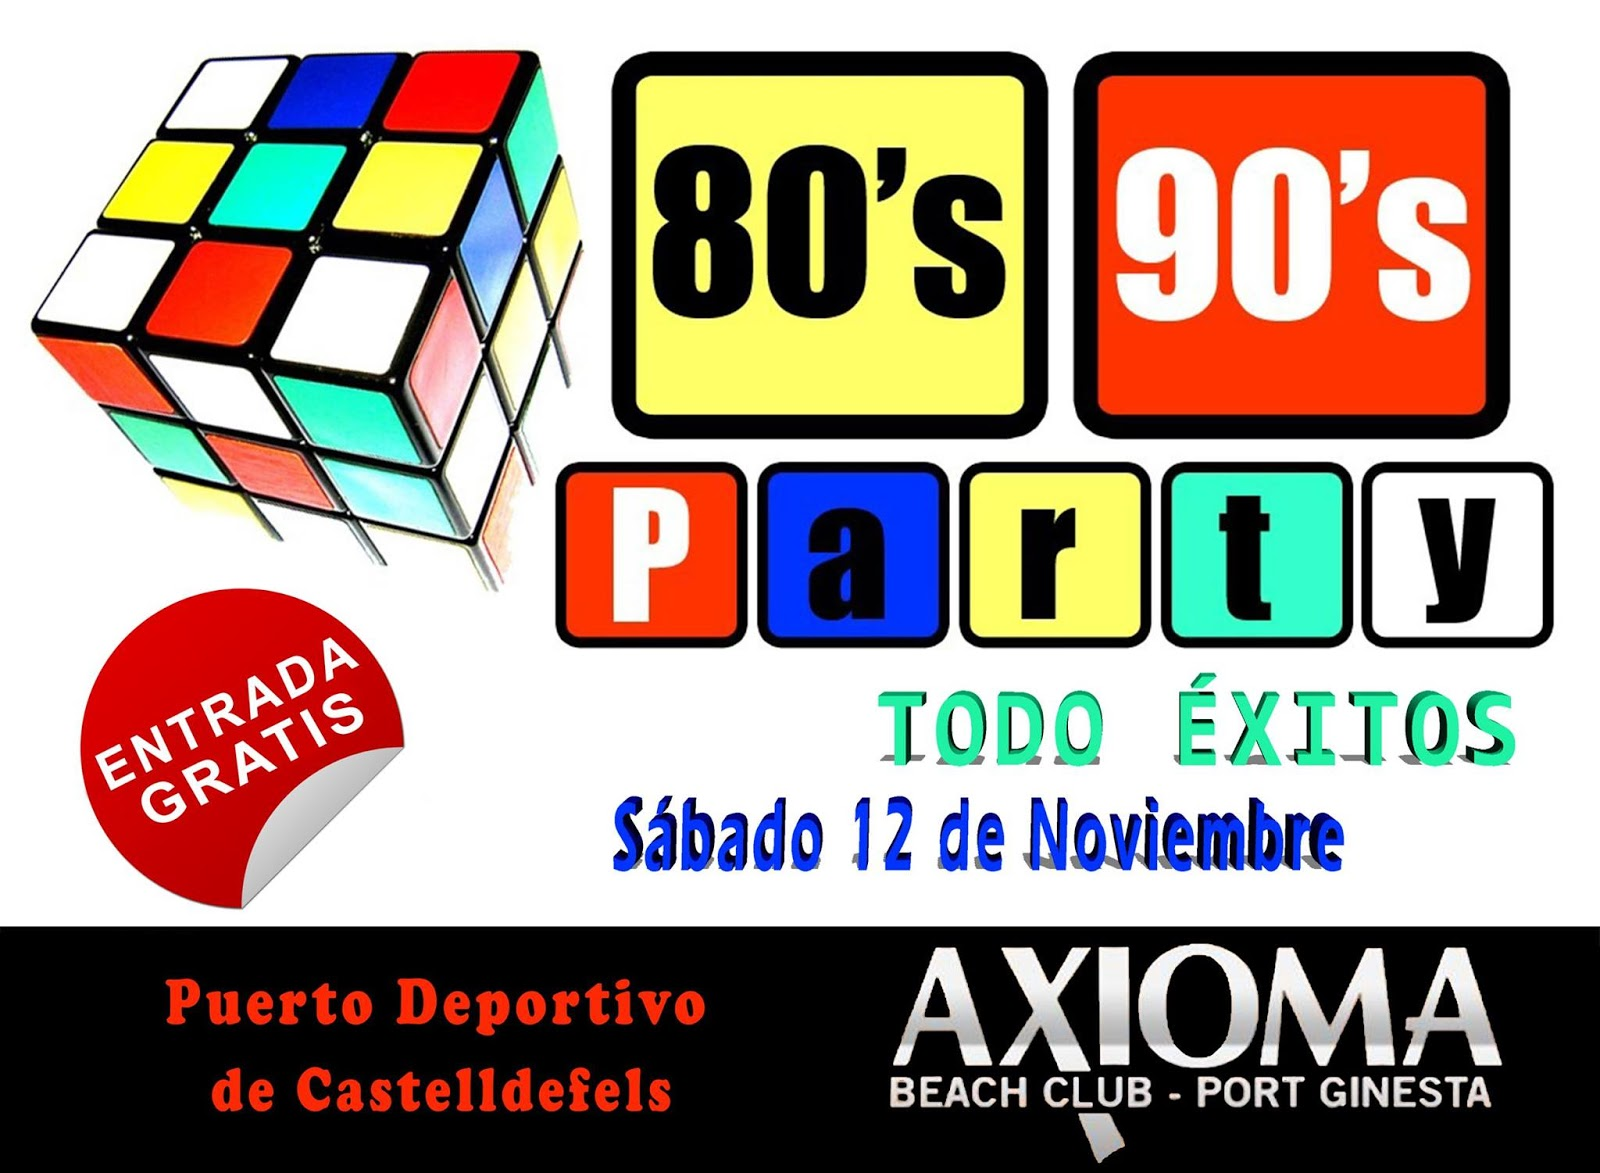 Flyer 80's 90's Party & Todo Éxitos